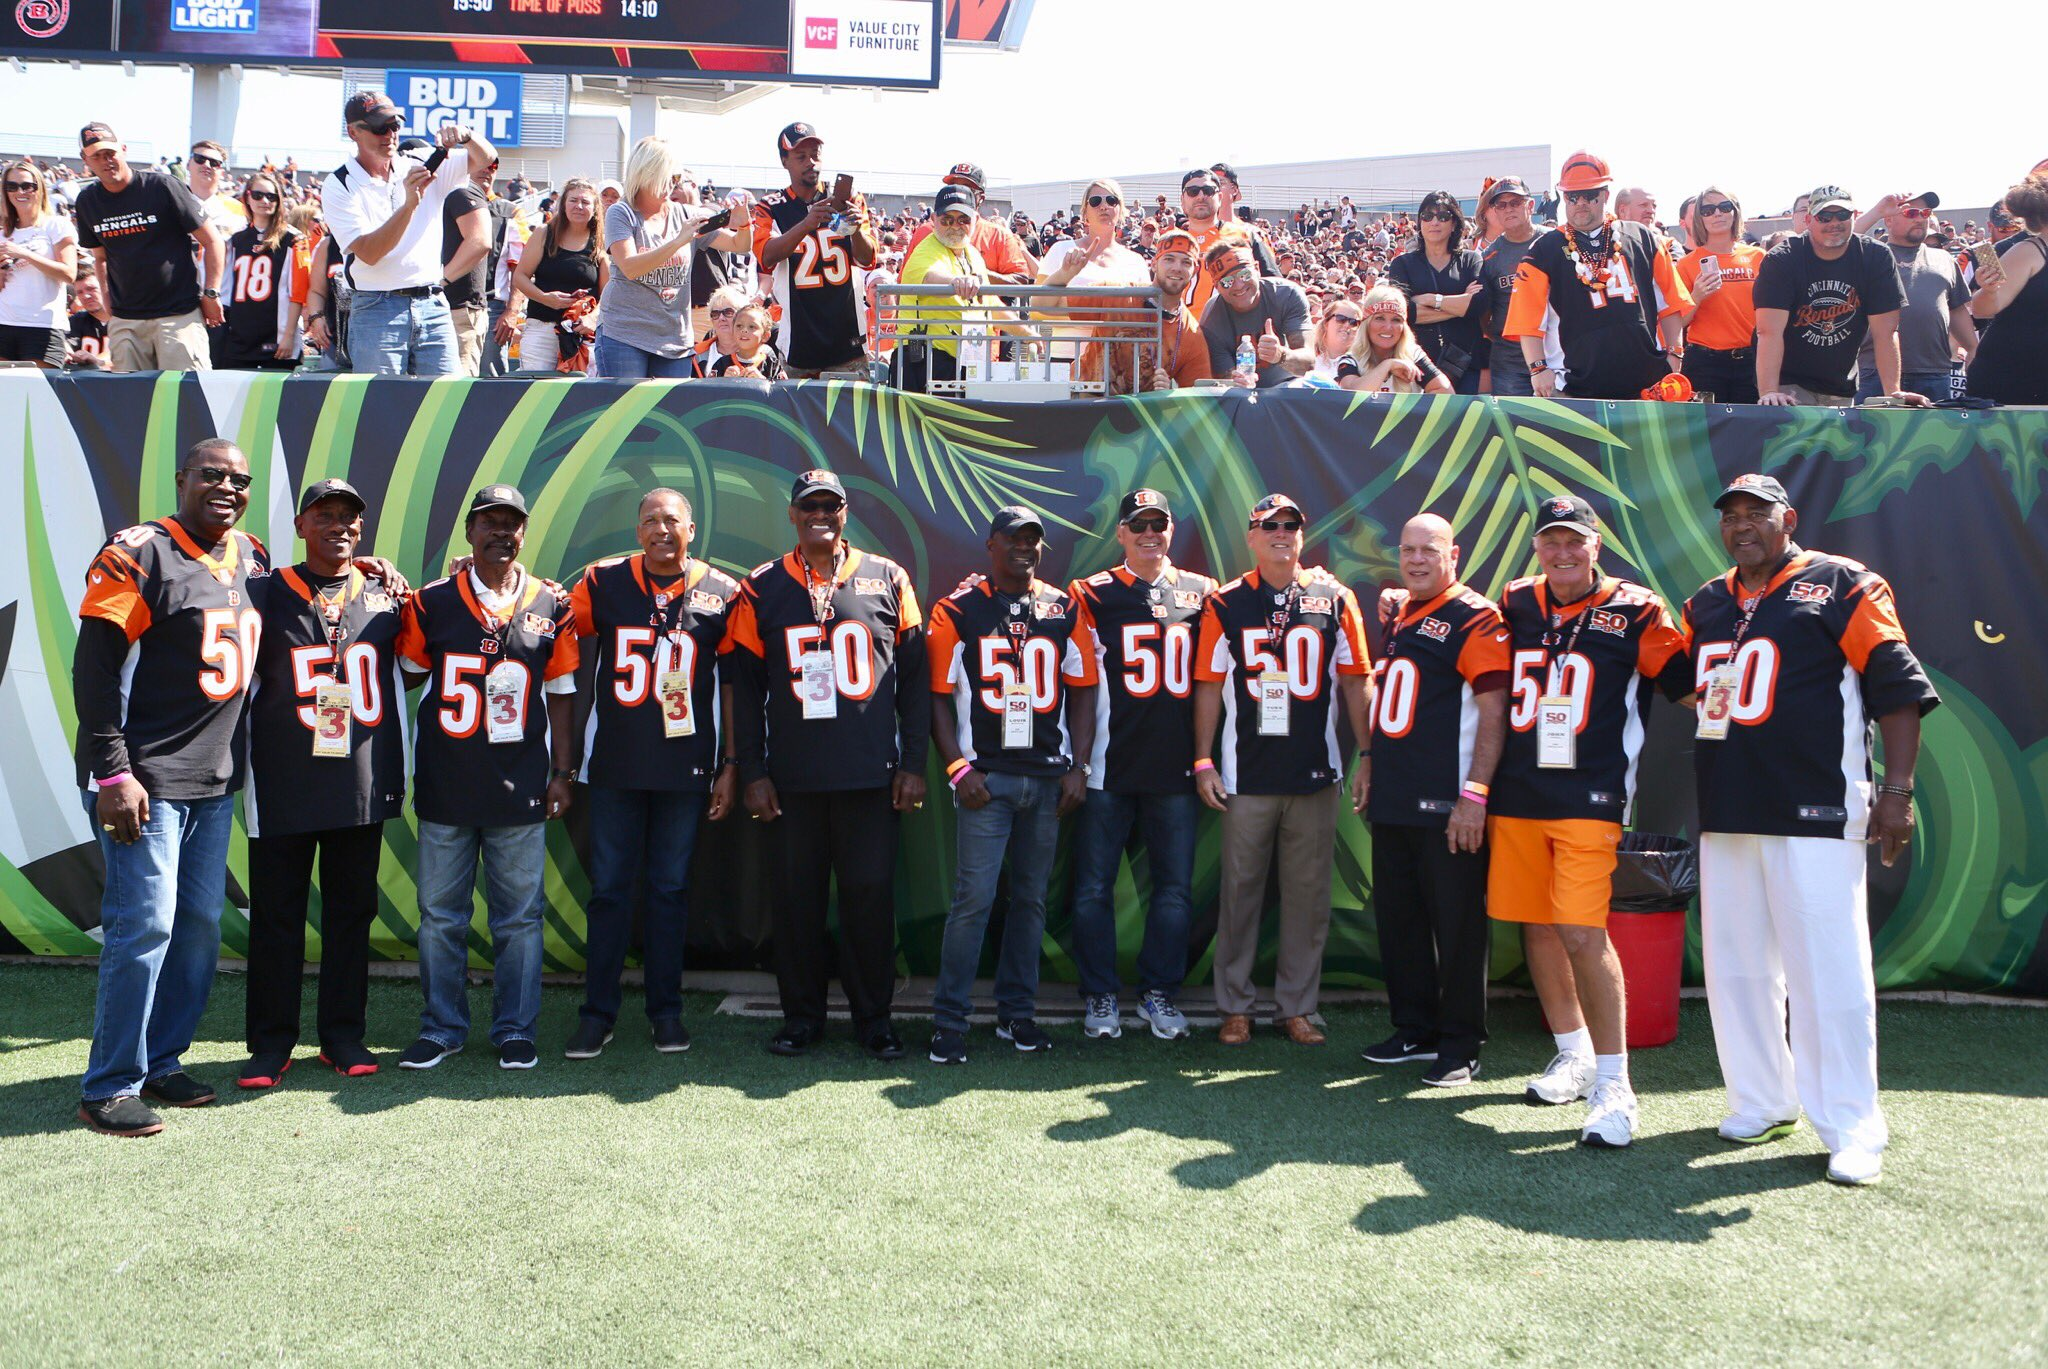 #Bengals legends were honored at halftime of today's game. #BALvsCIN #Bengals50 https://t.co/2uXeyx5Qgc